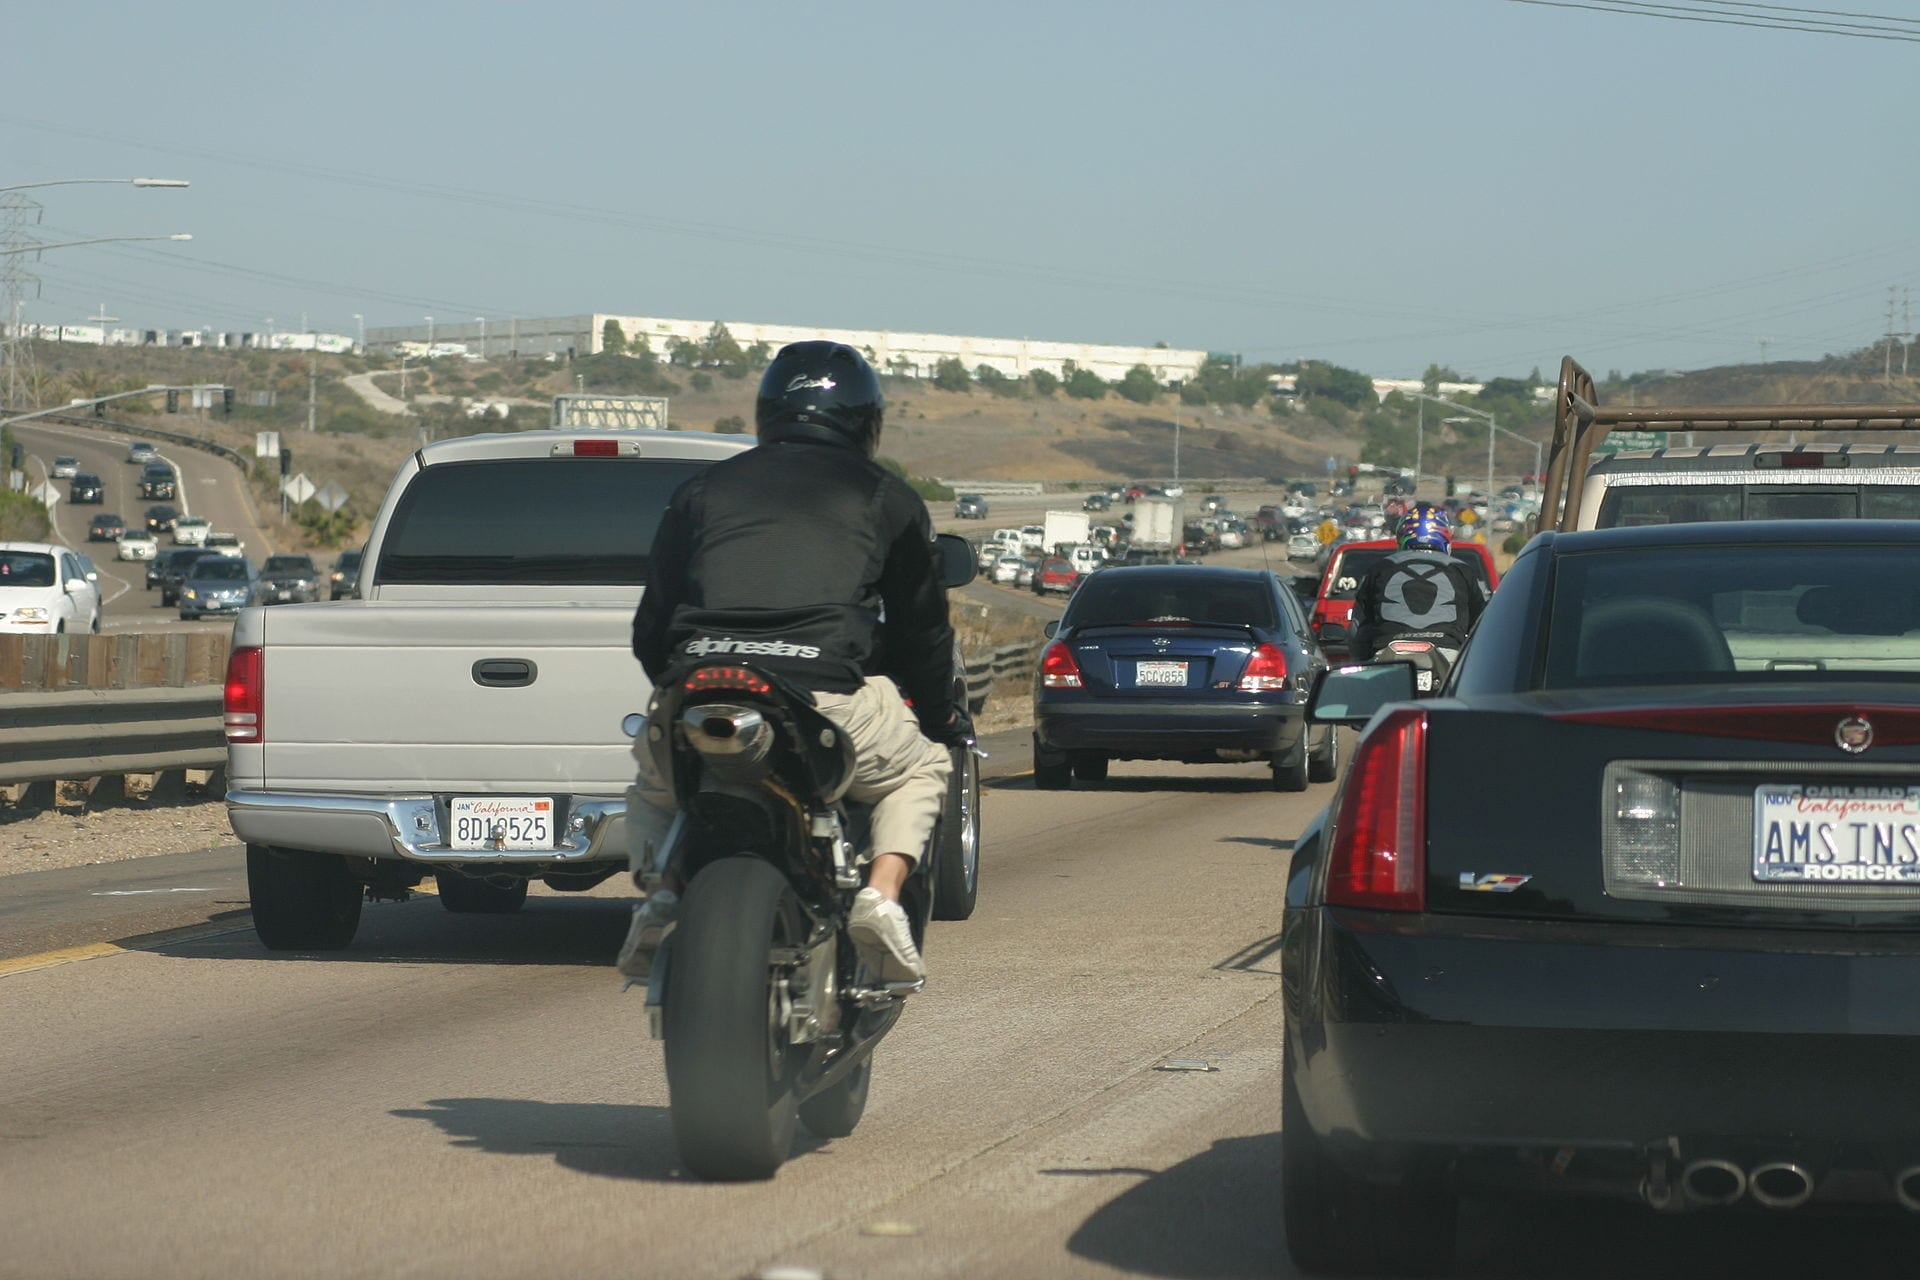 , Los Angeles Lane Splitting Motorcycle Accidents and Injuries, The Law Offices of Steers & Associates